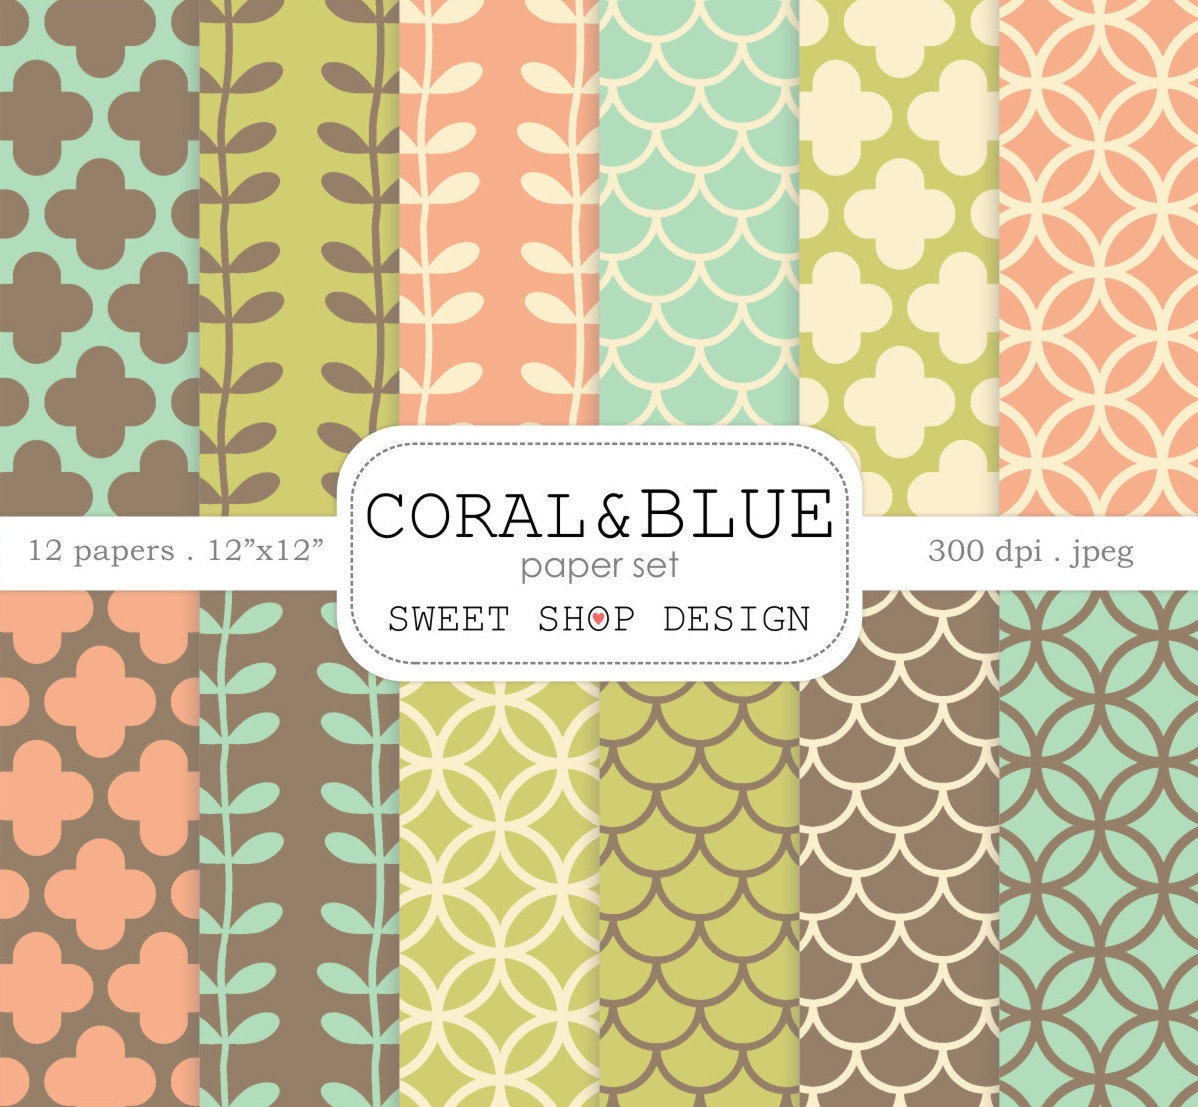 Clean image pertaining to scrapbook paper printable